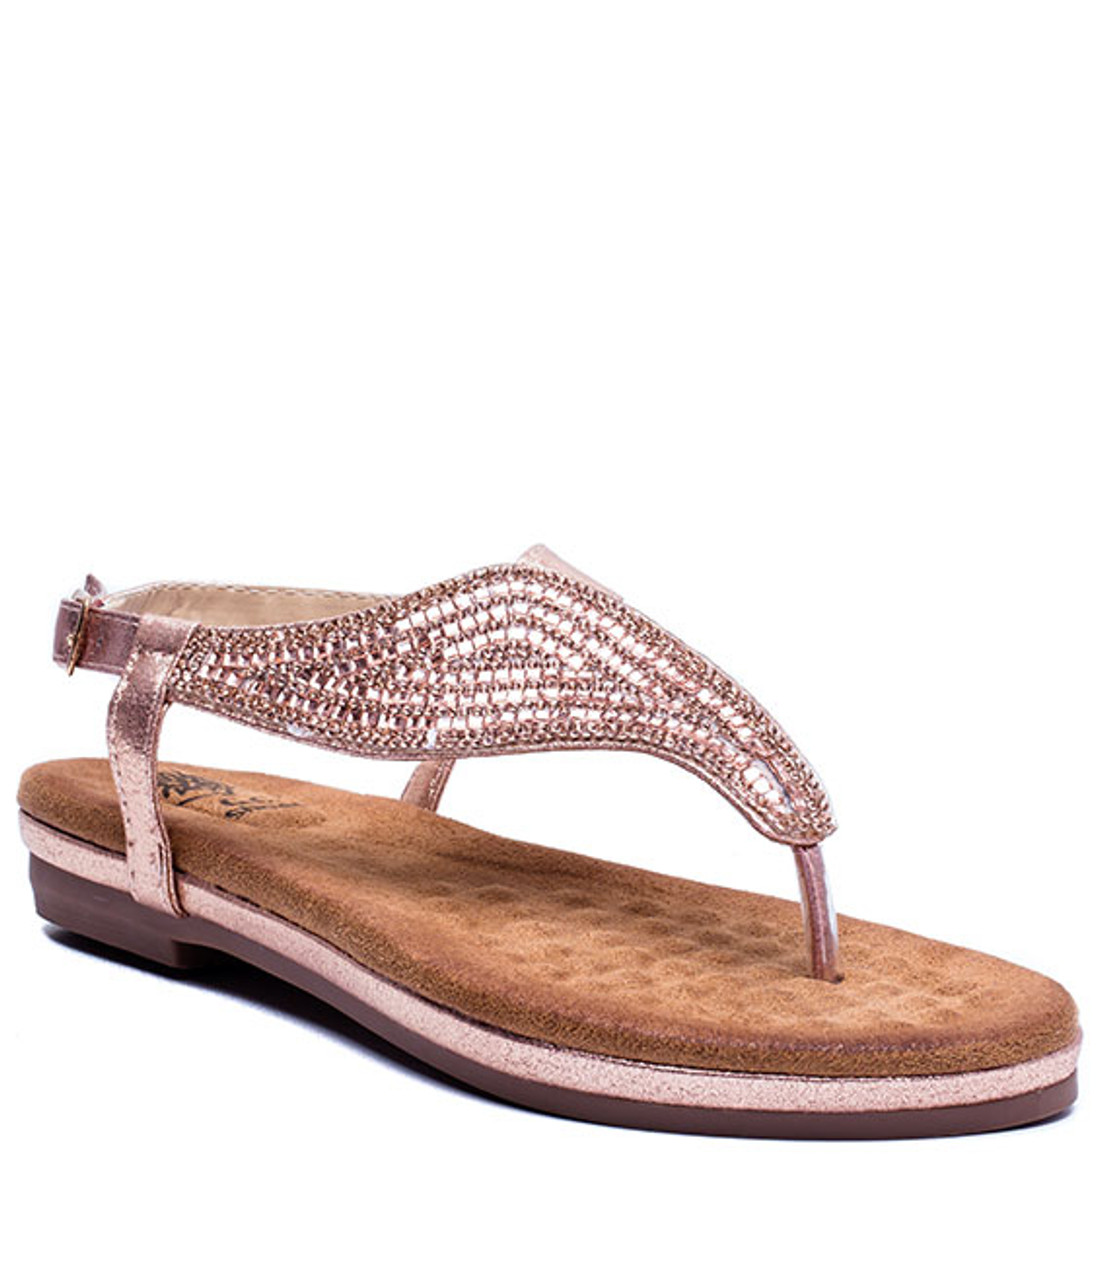 4aab56876 ... Mira Summer Sandals Rose Gold. Previous Next